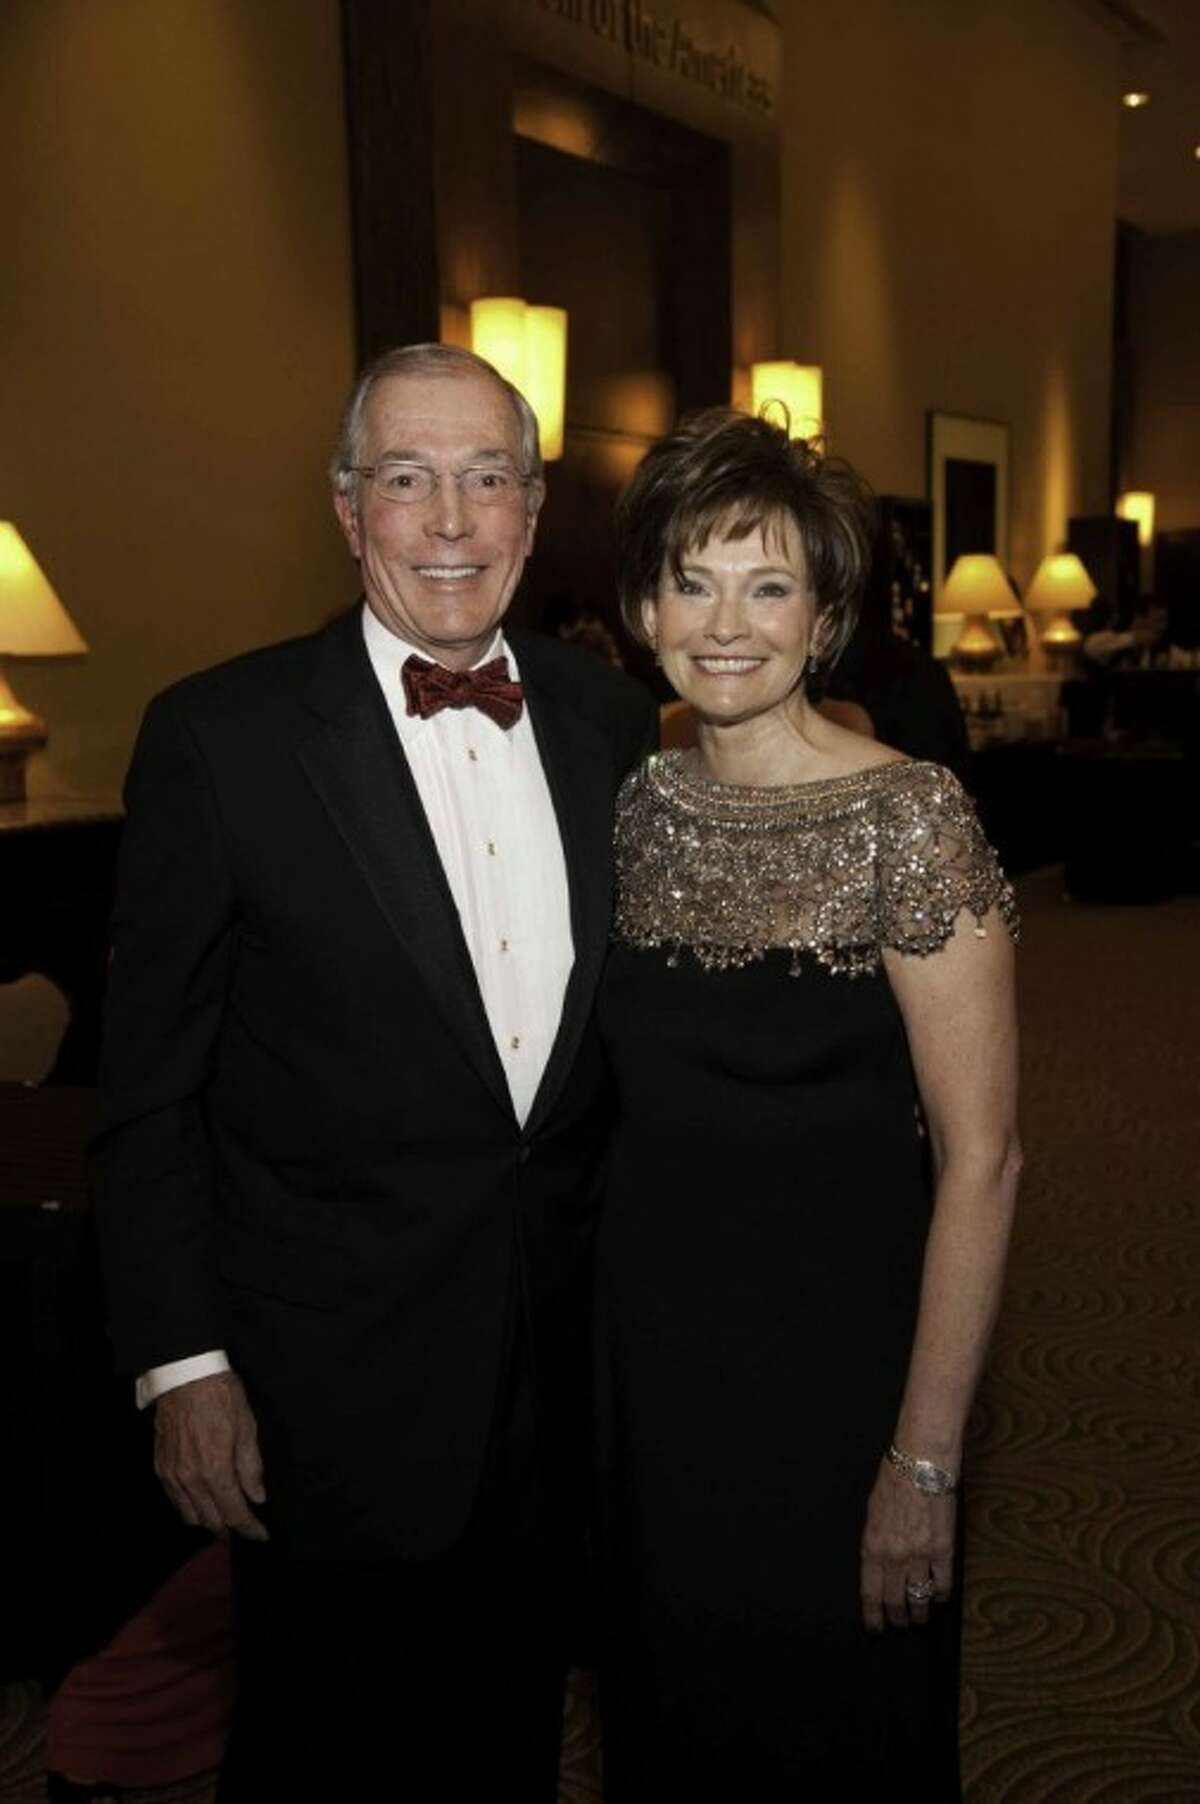 This year's event chairs John and Bobbie Nau. (Photo by Alexander's Fine Portrait Design, submitted by American Heart Association)